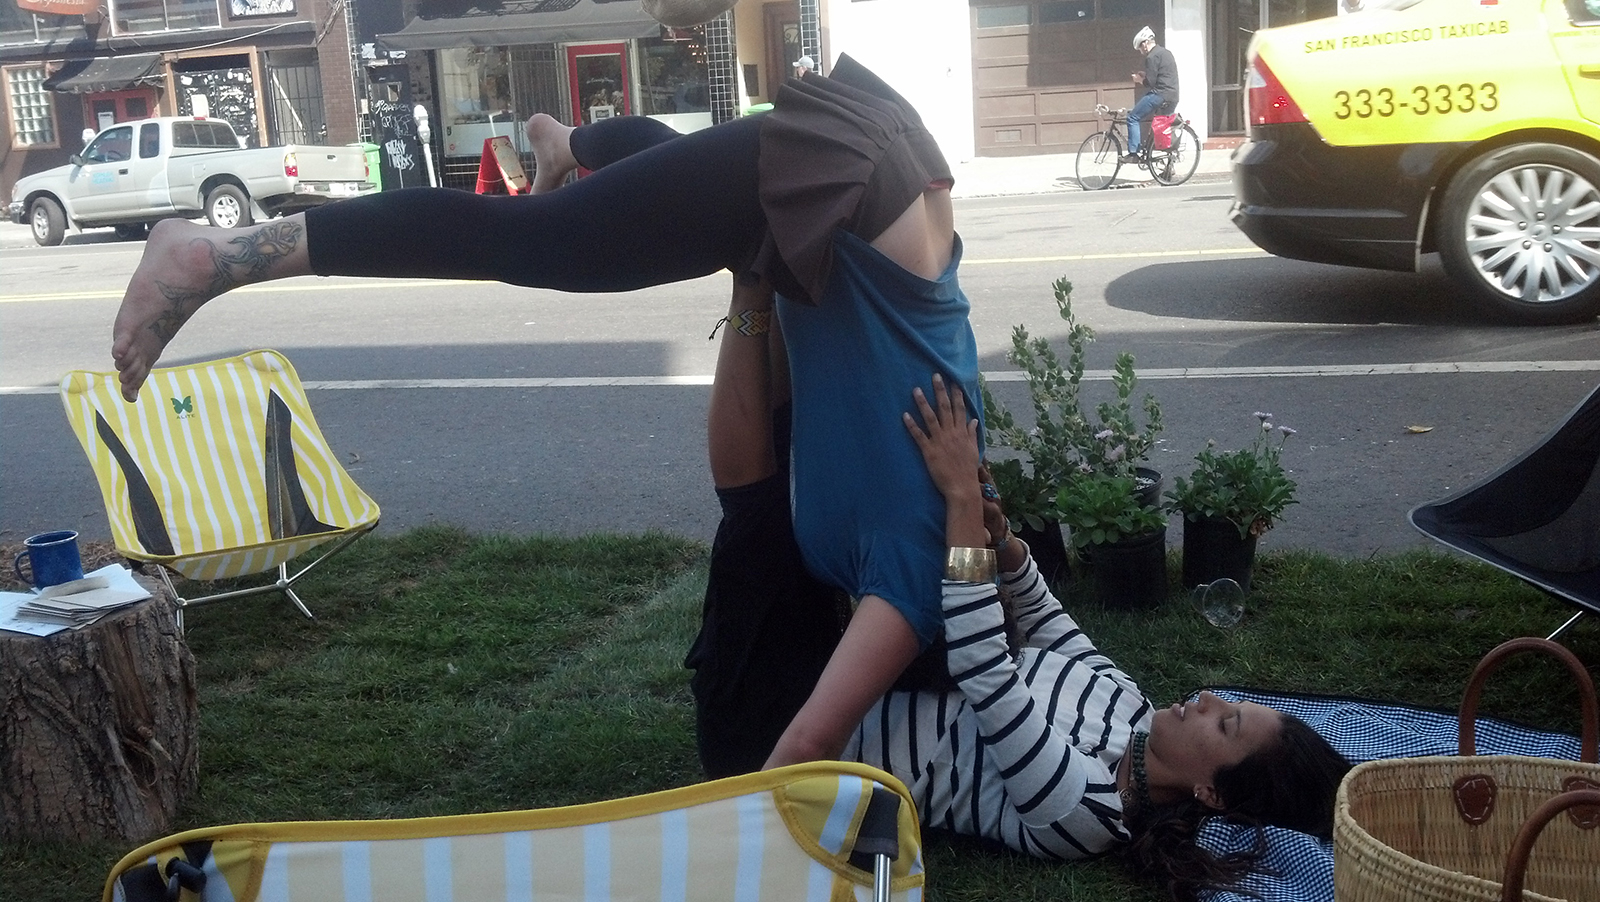 A young woman gives another young woman a human airplane ride at a pop-up parklet.